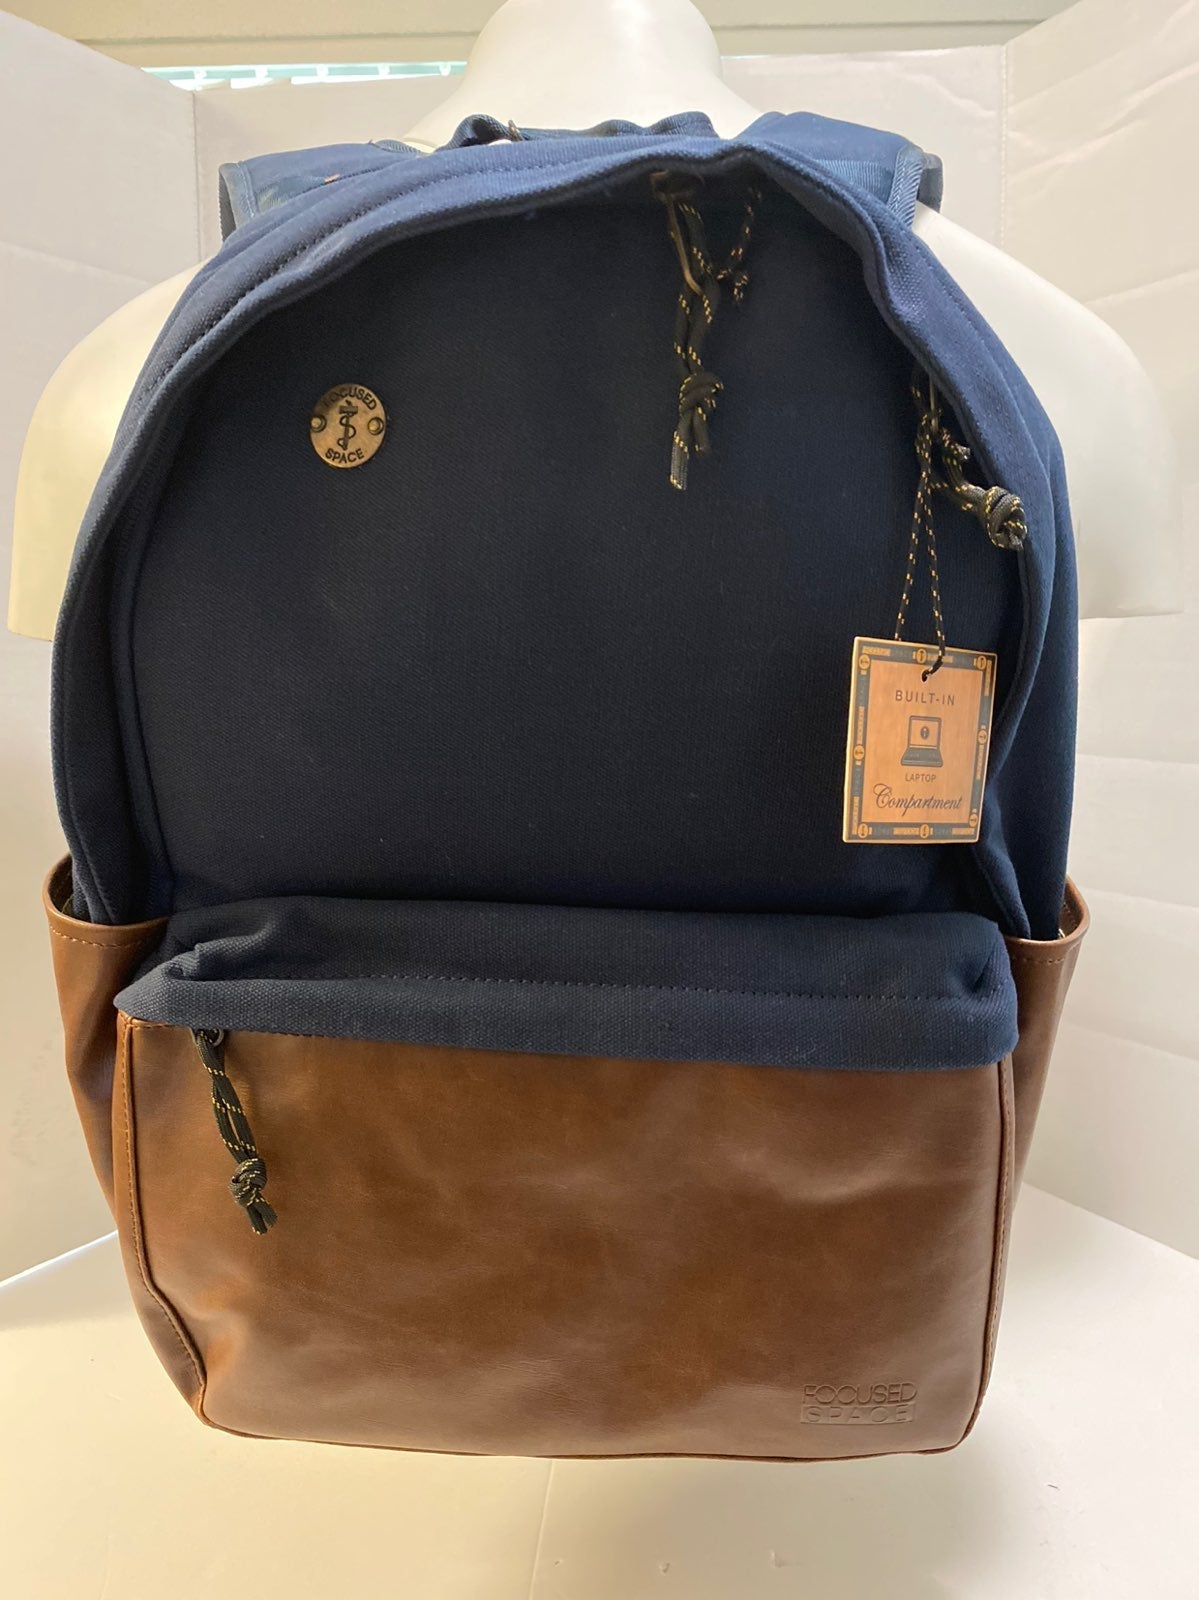 Focused Space Backpack Leater brown ipad